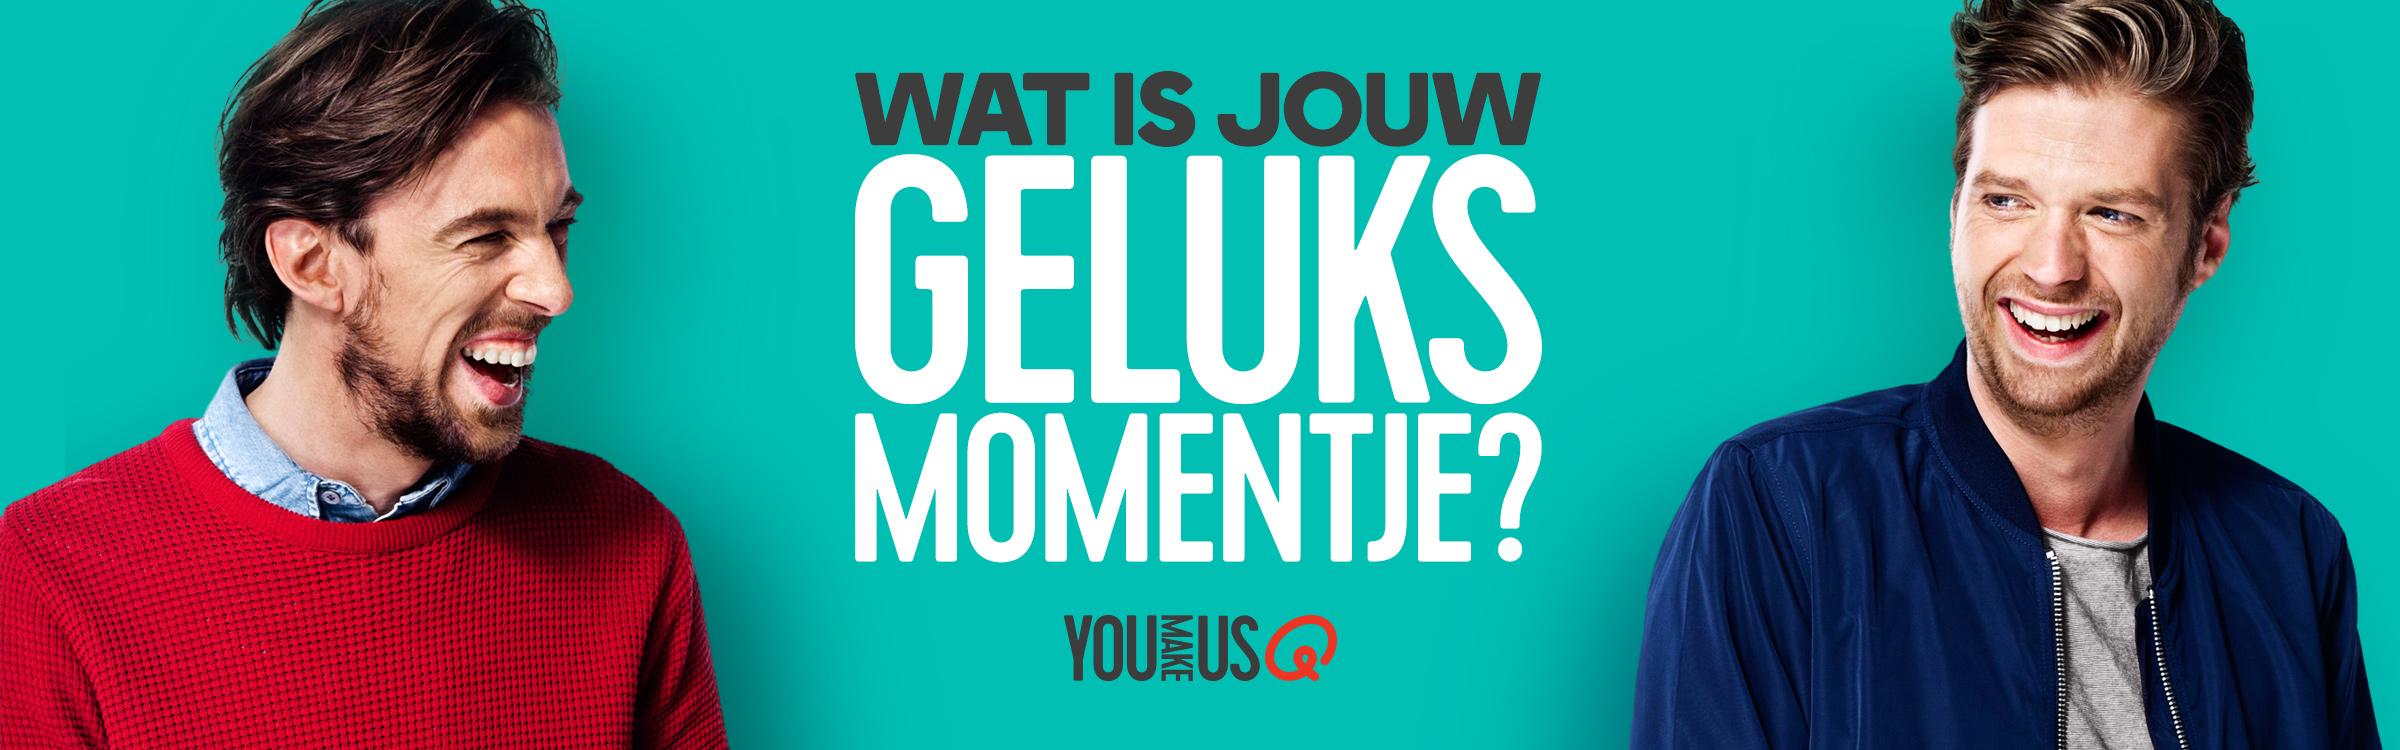 Qmusic actionheader gelukmoment